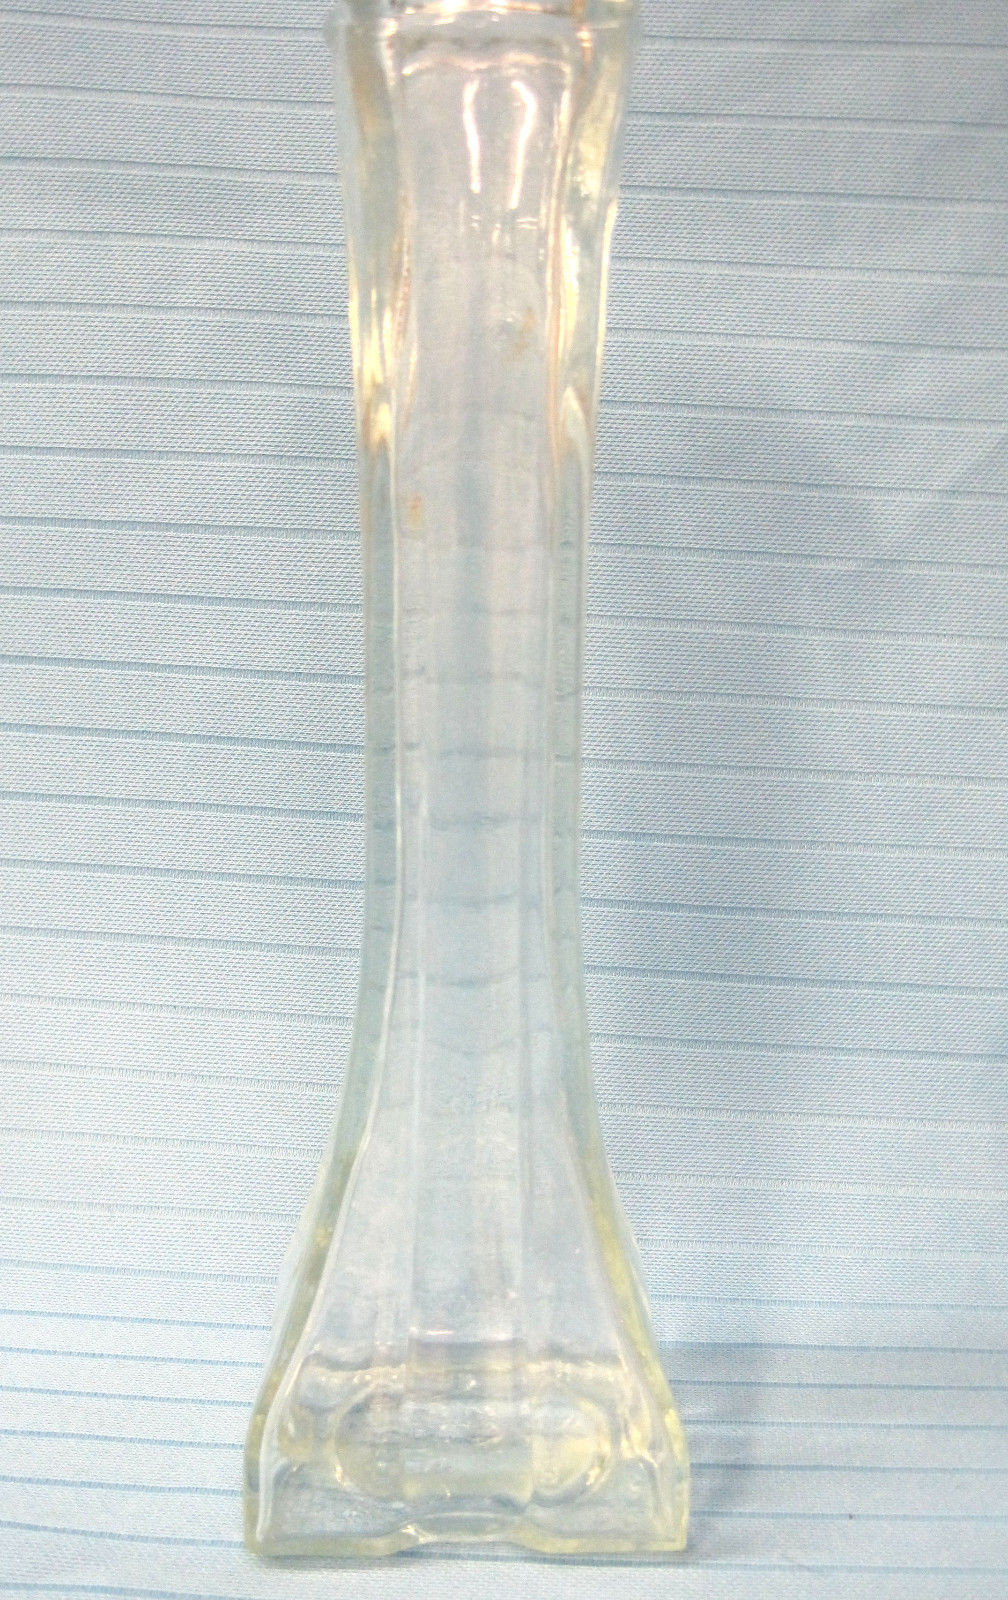 Primary image for Bud Vase Profile 1408 Europa #12 Square Top/Bottom Clear Pressed Glass 1986-87